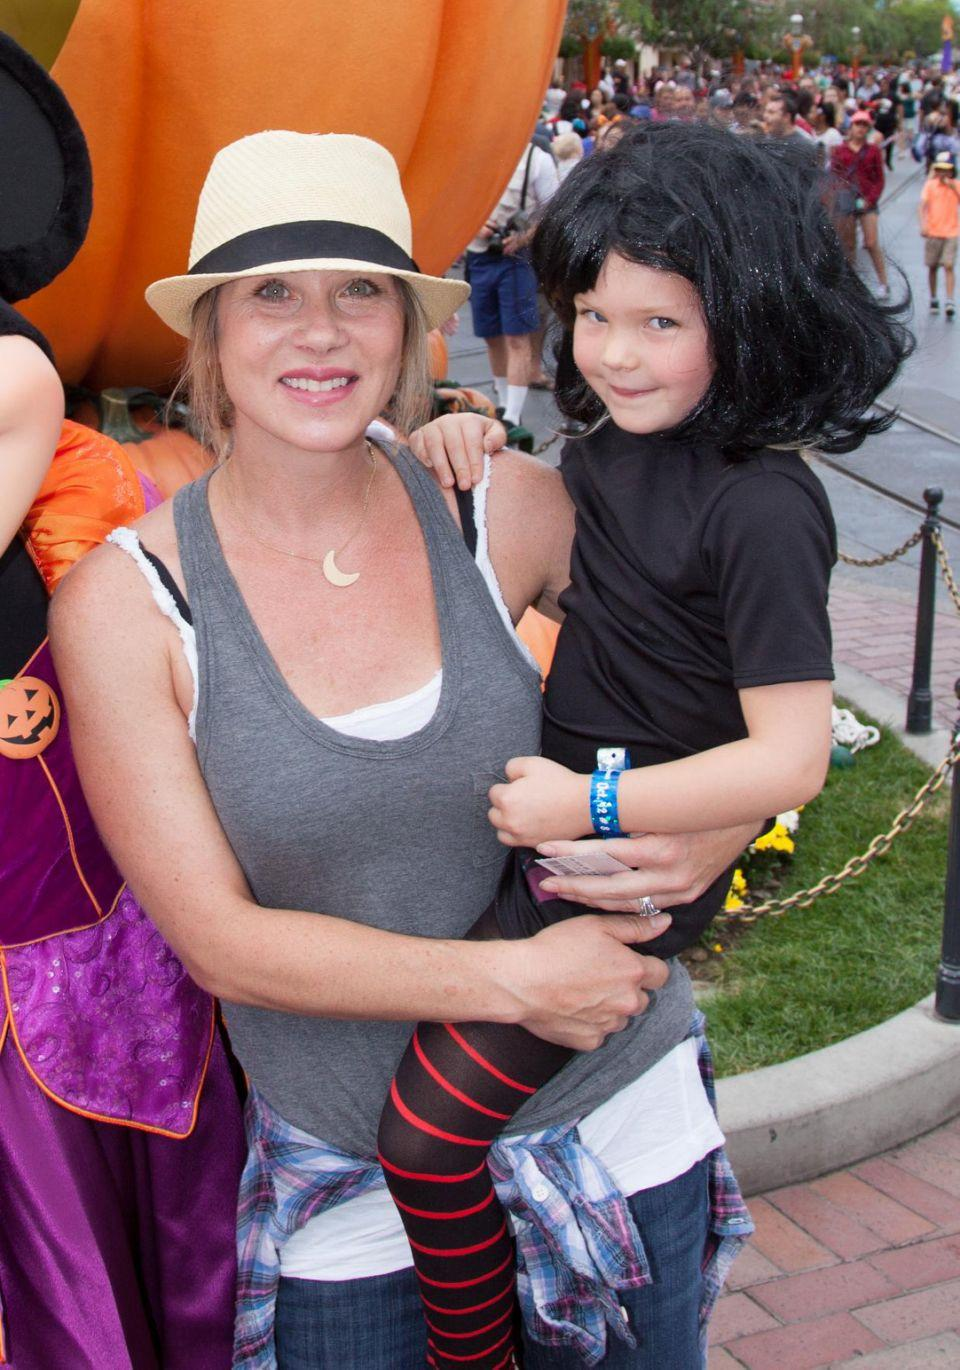 She fears her daughter may carry the BRCA1 gene too. They are here together at Halloween in 2015. Source: Getty